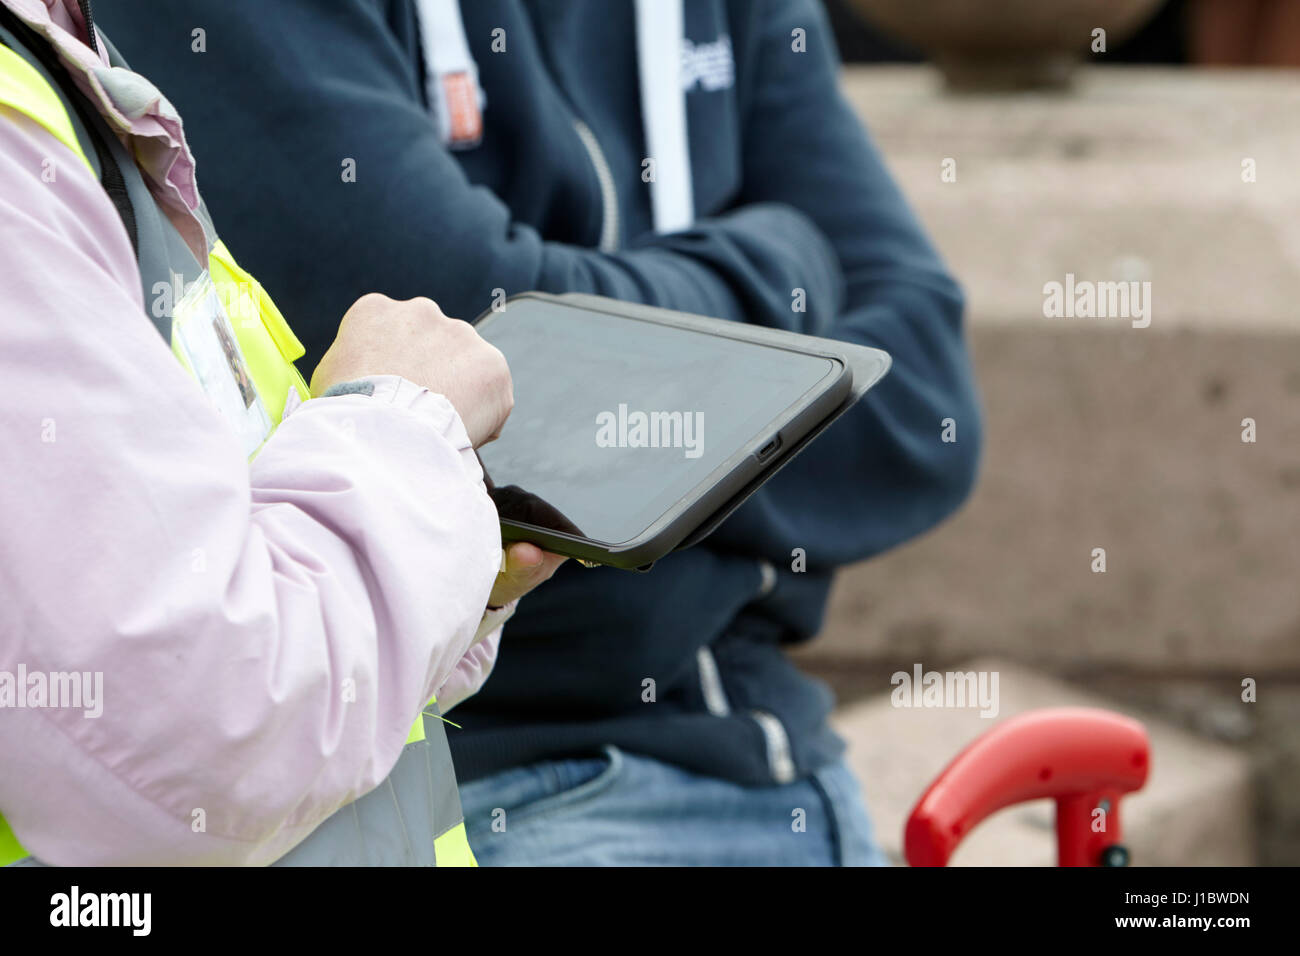 using ipad tablet to conduct street questionnaire survey - Stock Image